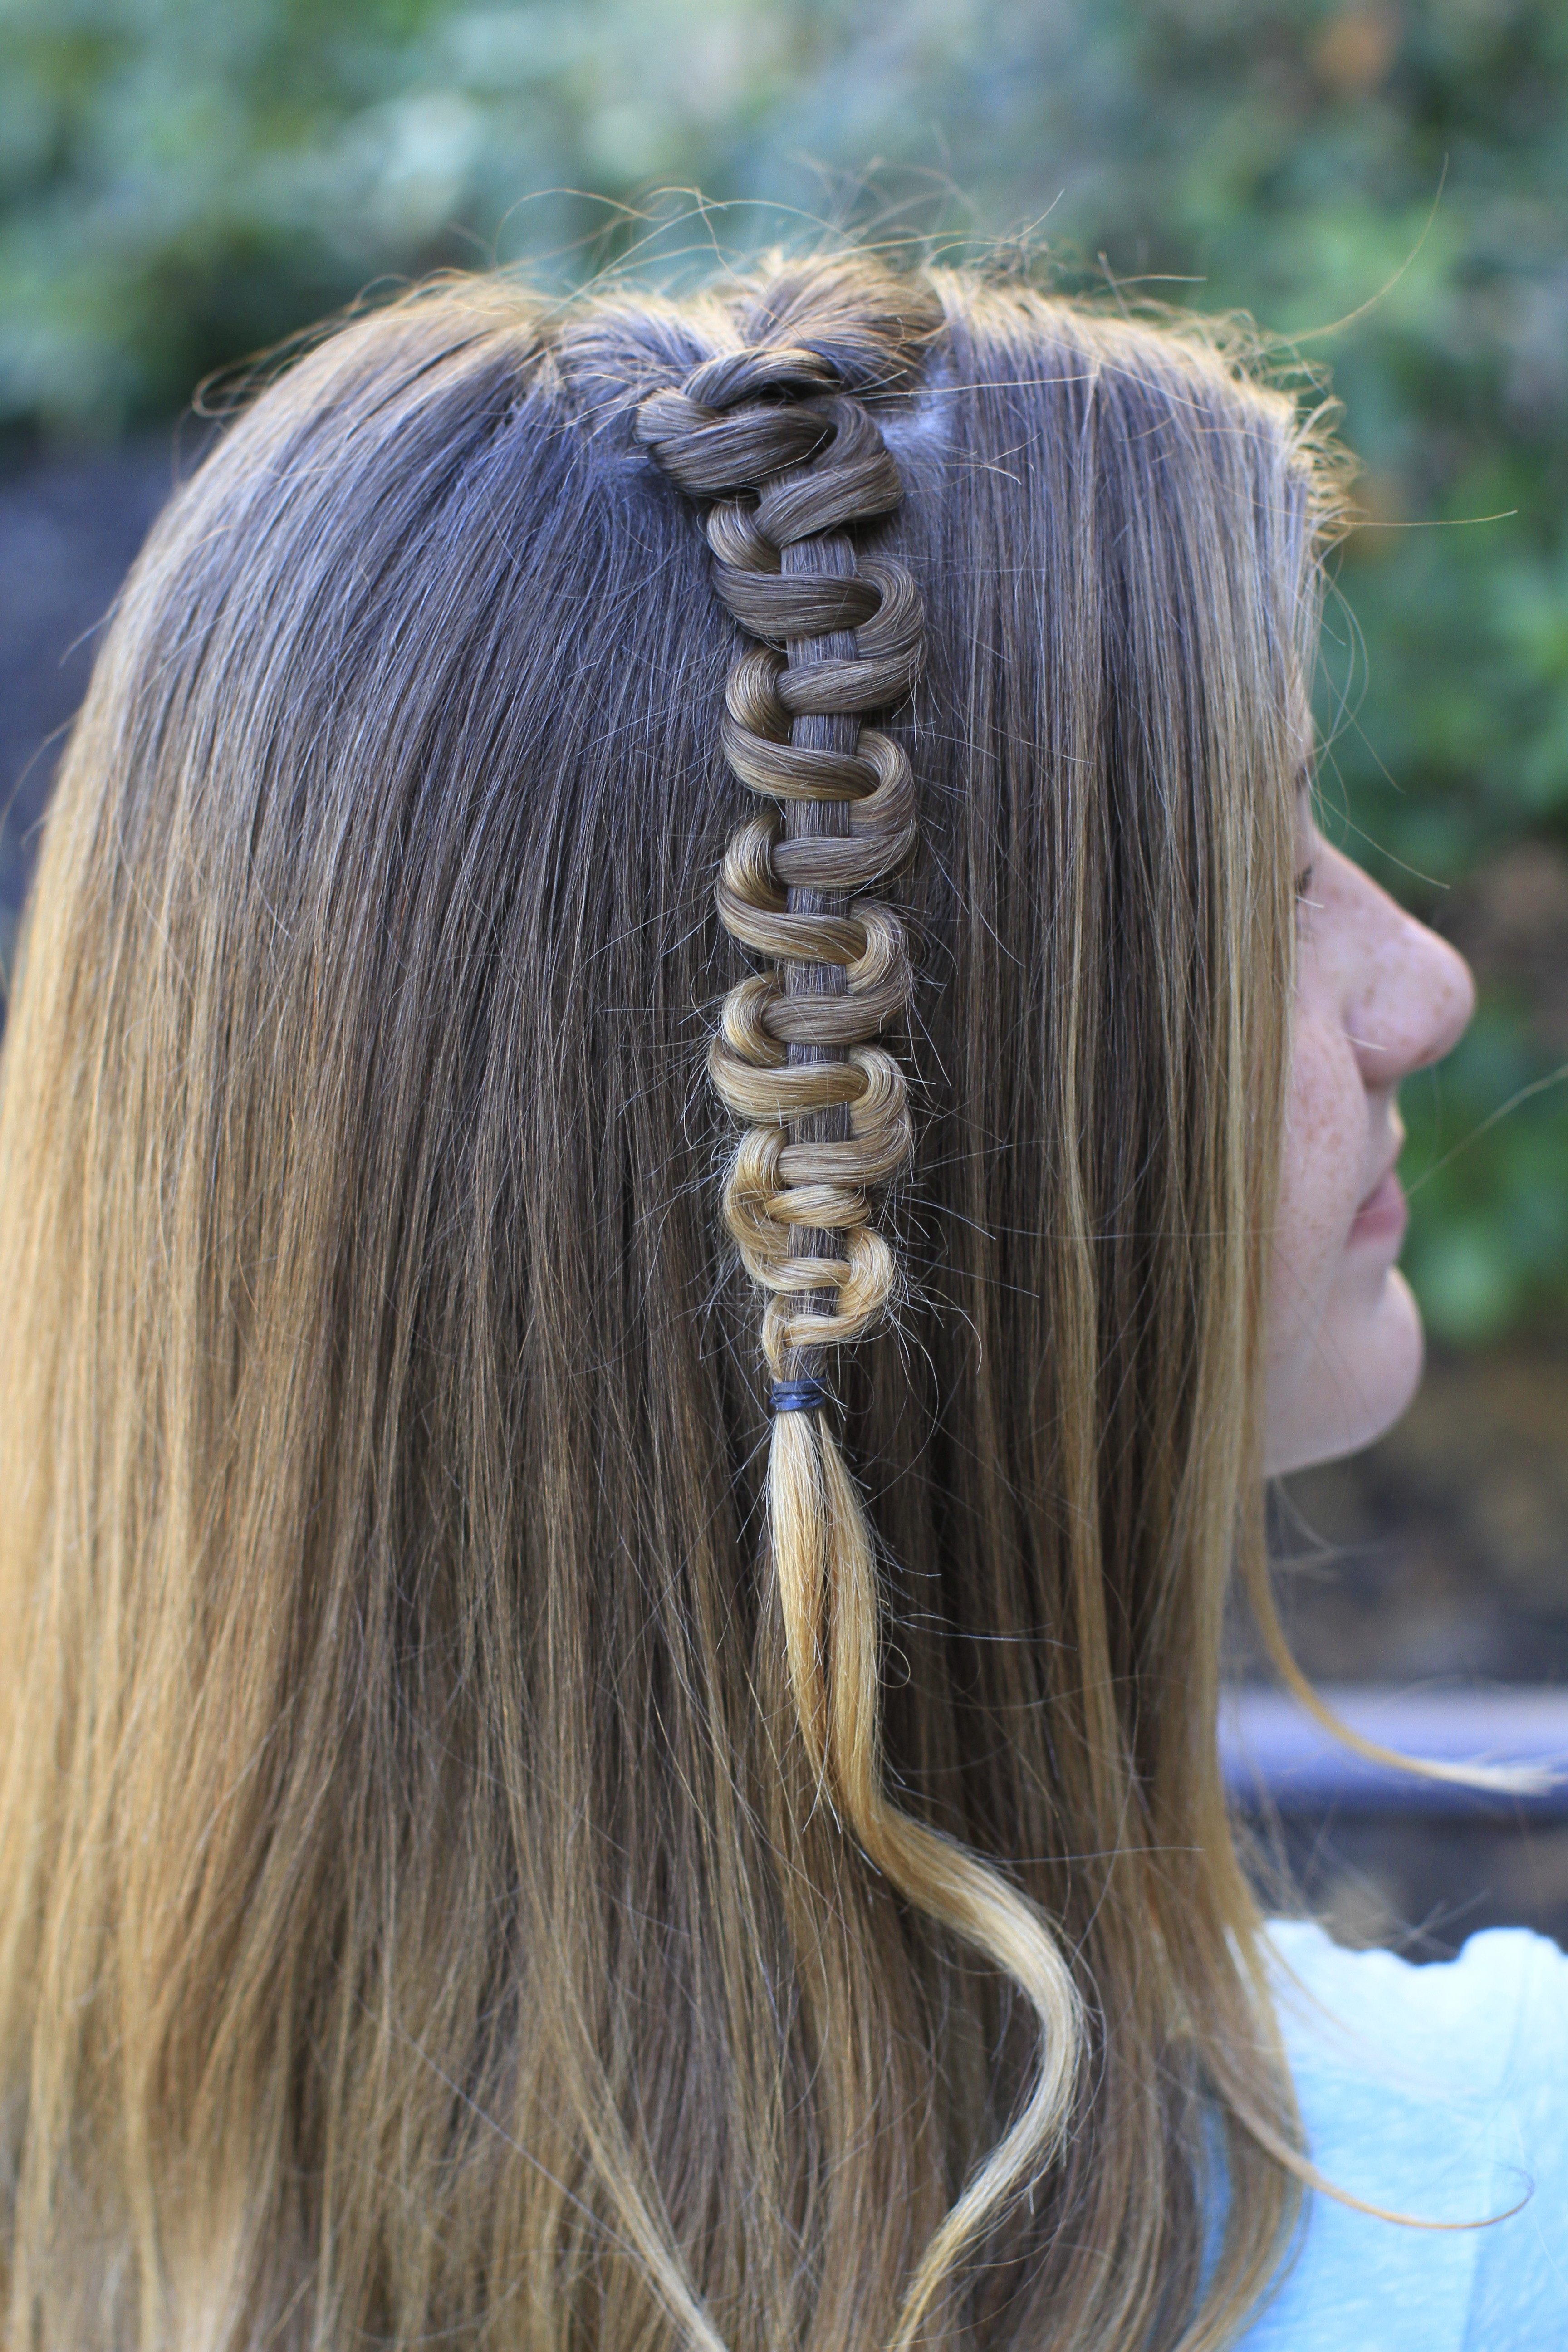 Best ideas about Picture Day Hairstyles For Girls . Save or Pin Teen Slide Up Braid St Patrick s Day Hairstyle Now.